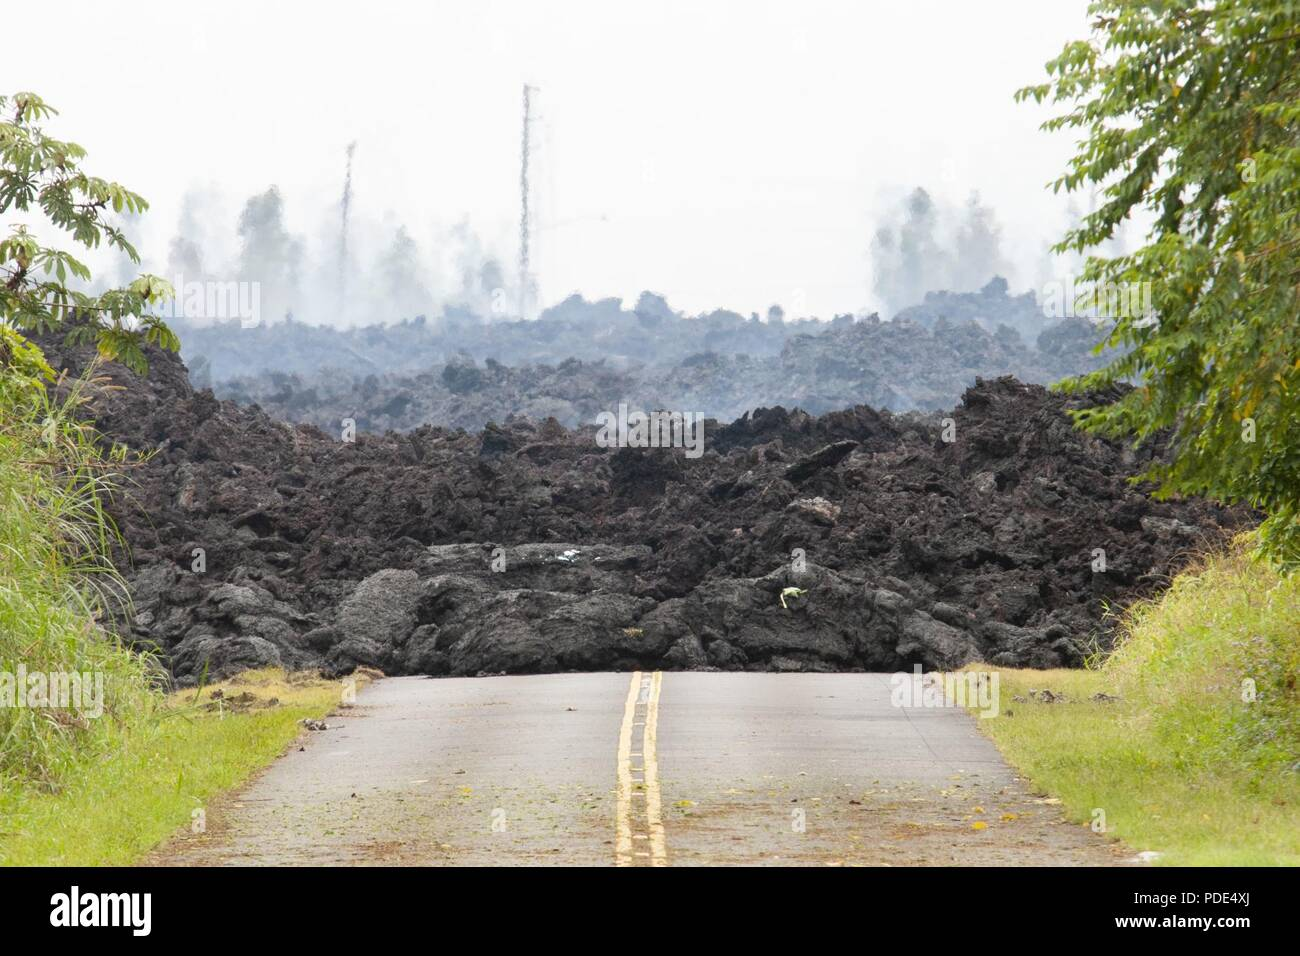 A lava roadblock covers a residential road May 12, 2018, at Leilani Estates, Pahoa, Hawaii. Members of the Hawaii Army and Air National Guard have been activated in order to assemble Task Force Hawaii, which is providing traffic assistance, presence patrols and supporting local government agencies with the volcano outbreak relief effort. Stock Photo